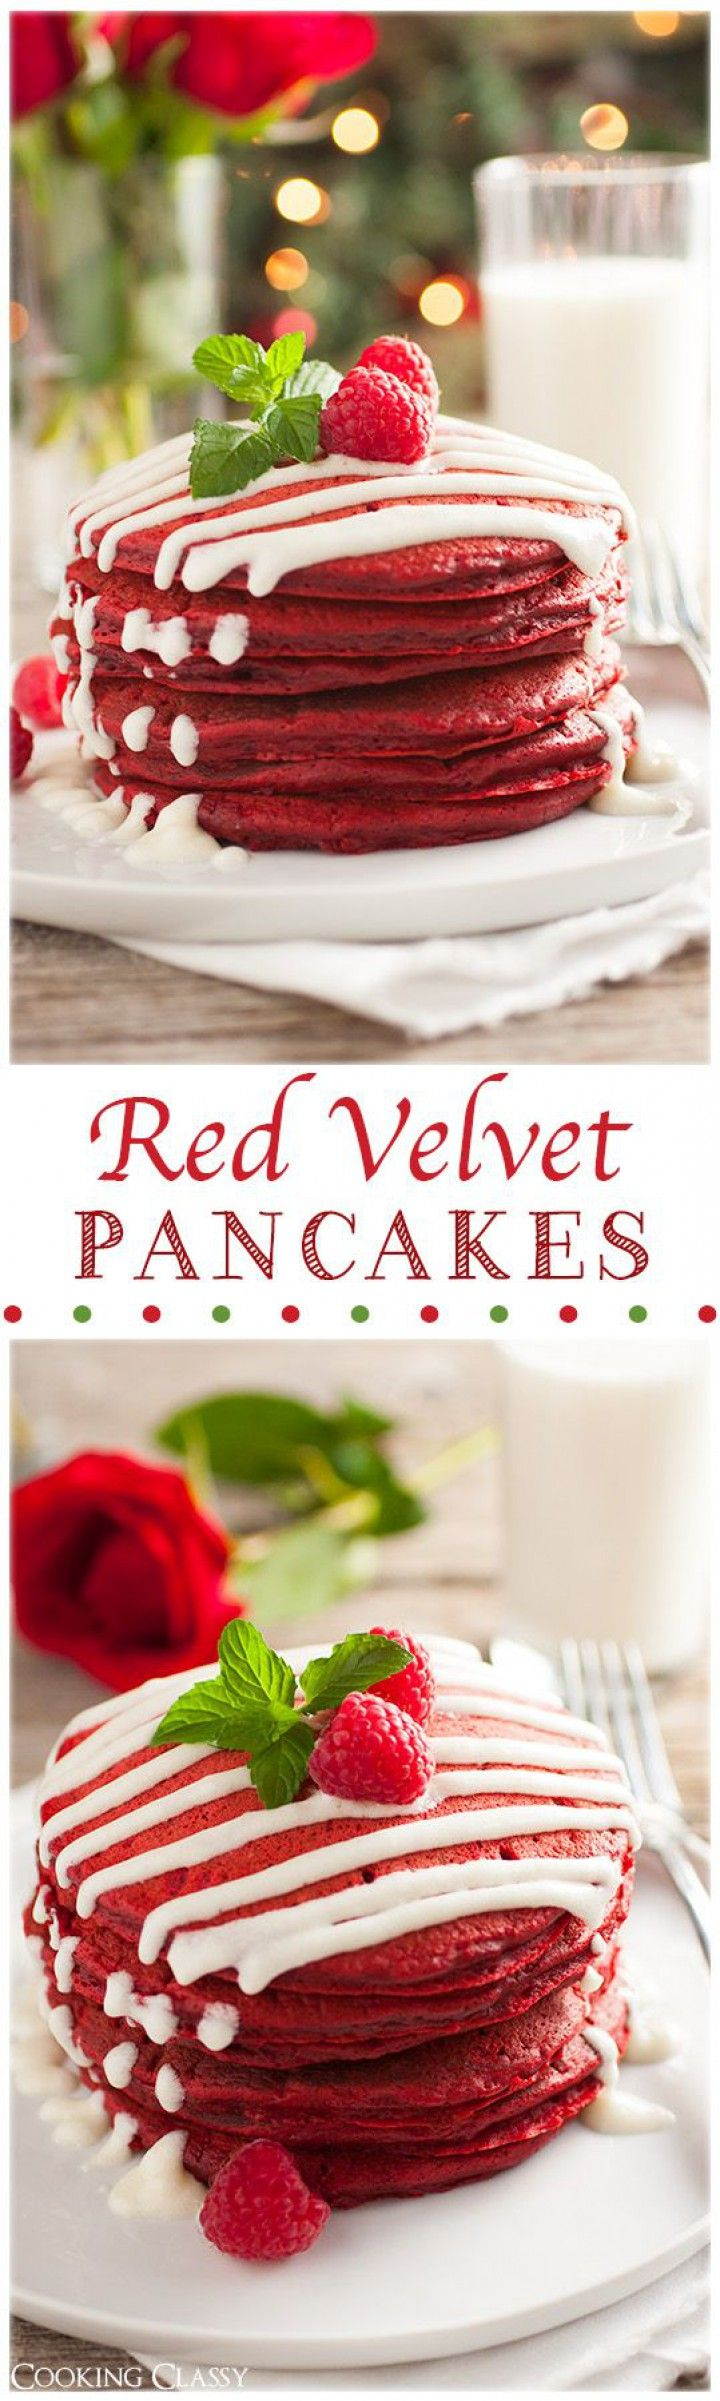 Red Velvet Pancakes Recipe Just amazing! How would you like to wake up to these on Holiday mornings?: